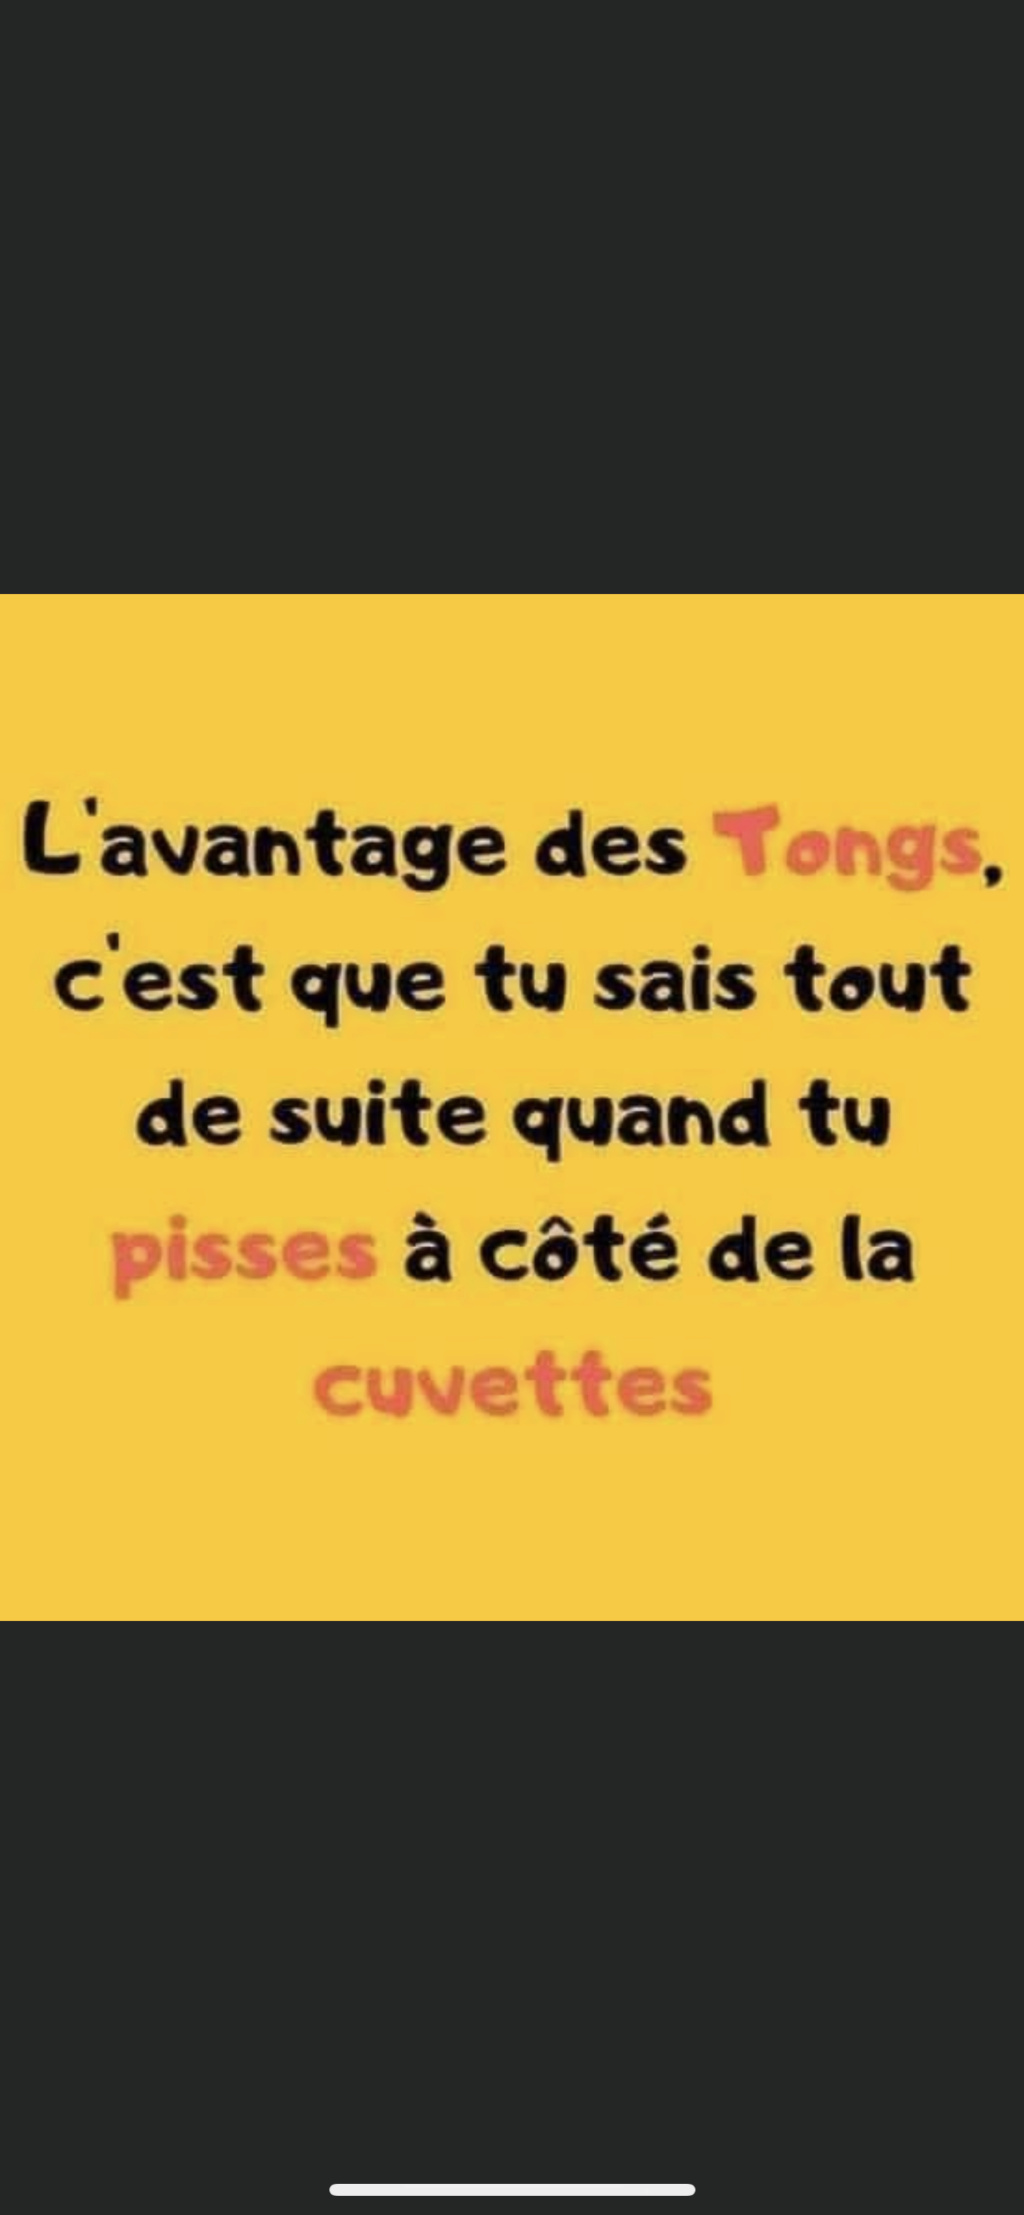 humour - Page 6 54cd0210